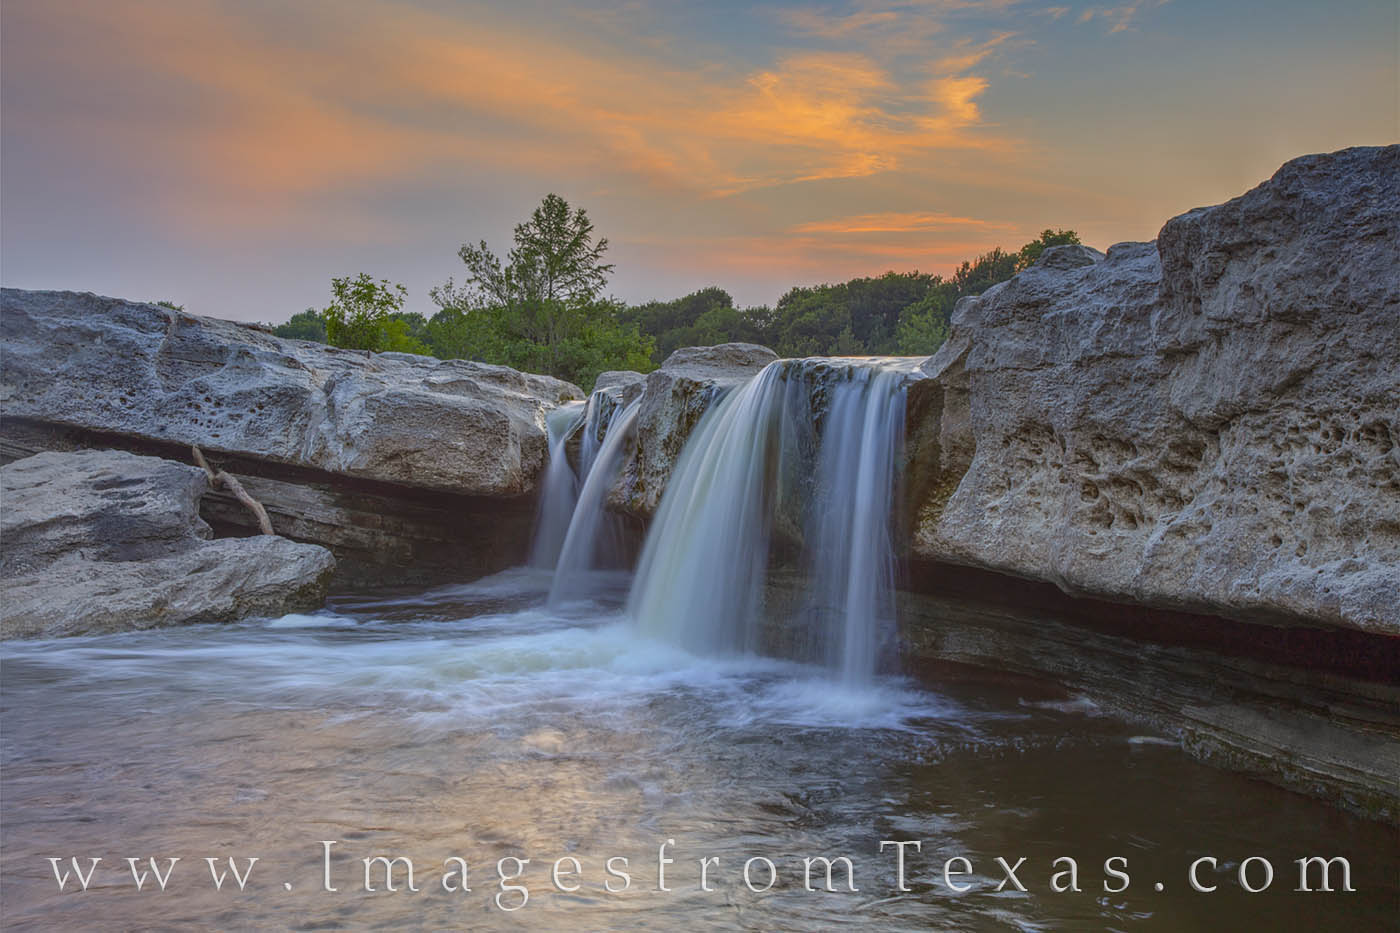 mckinney falls state park, lower falls, prints for sale, texas state parks, cascade, waterfall, austin, summer, photo